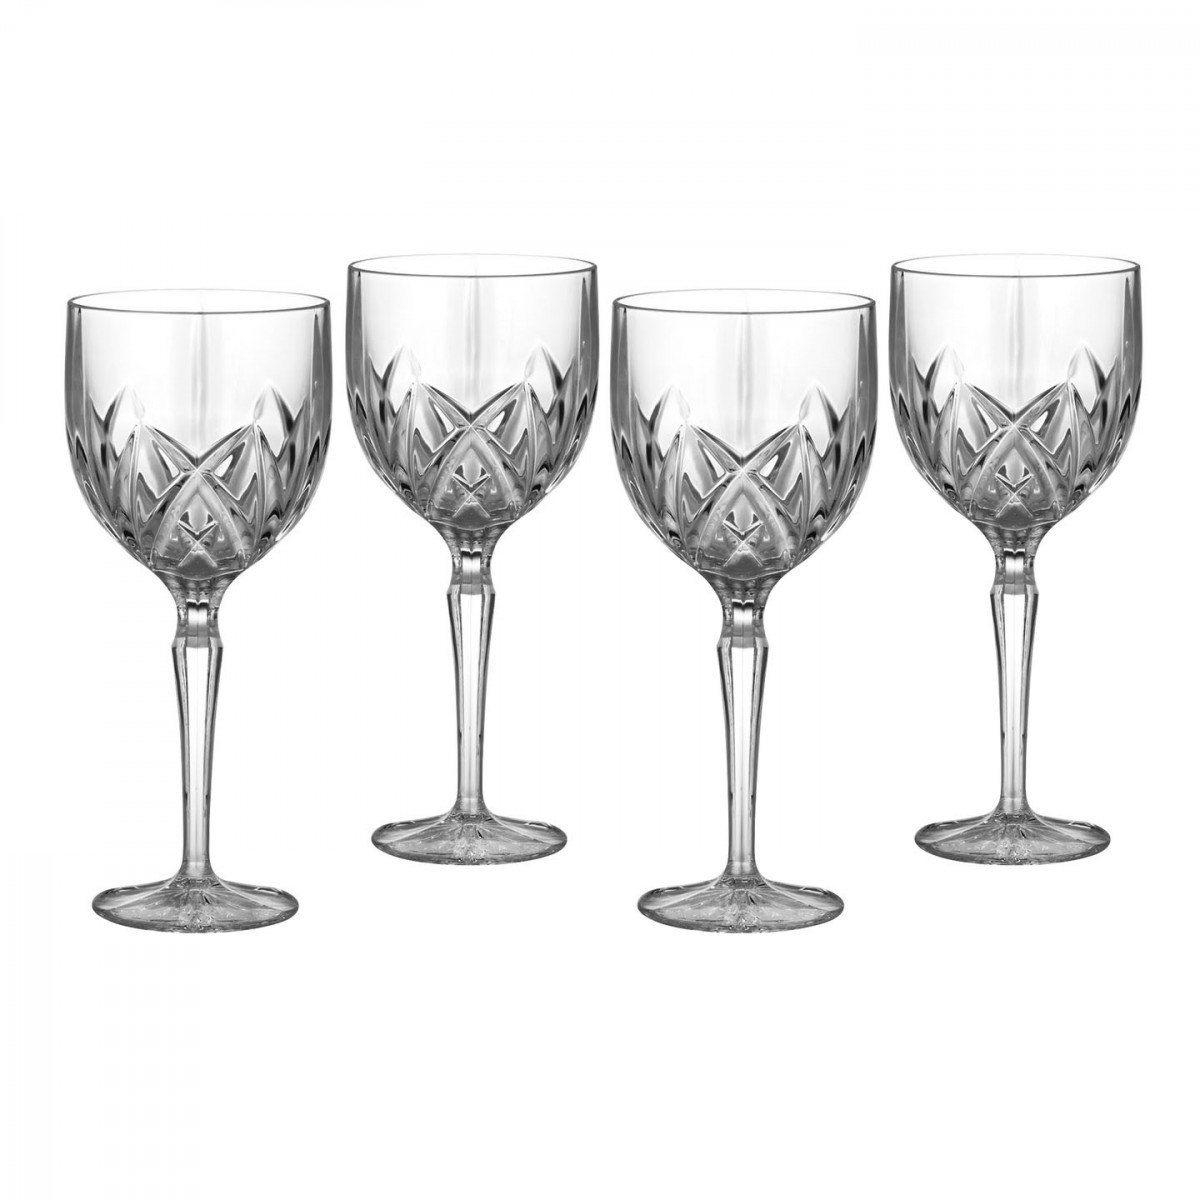 Marquis by Waterford Brookside 8-Ounce White Wine Glass, Set of 4